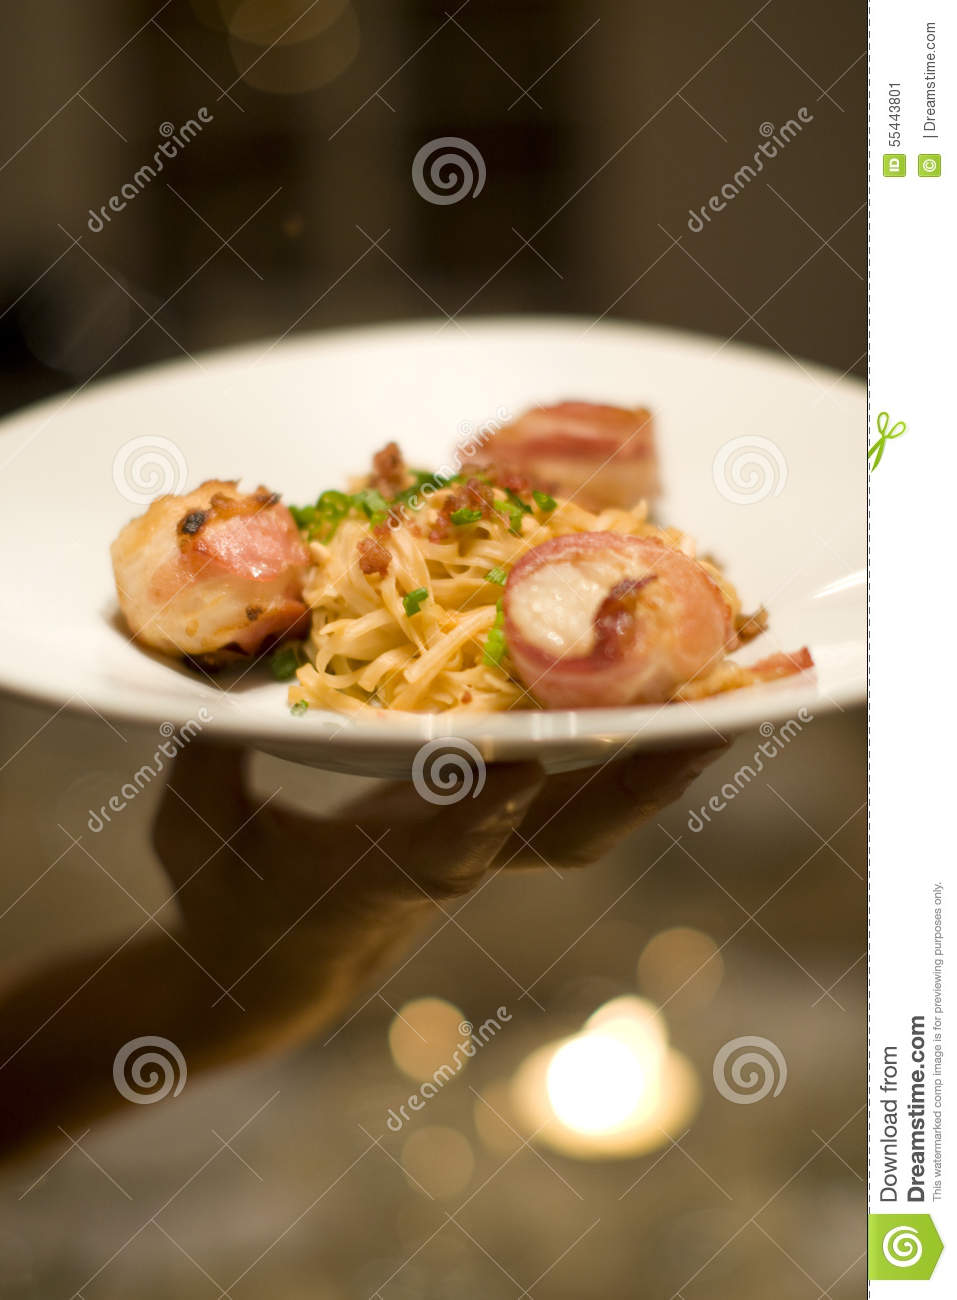 Bacon wrapped scallops and Fettuccine for dinner